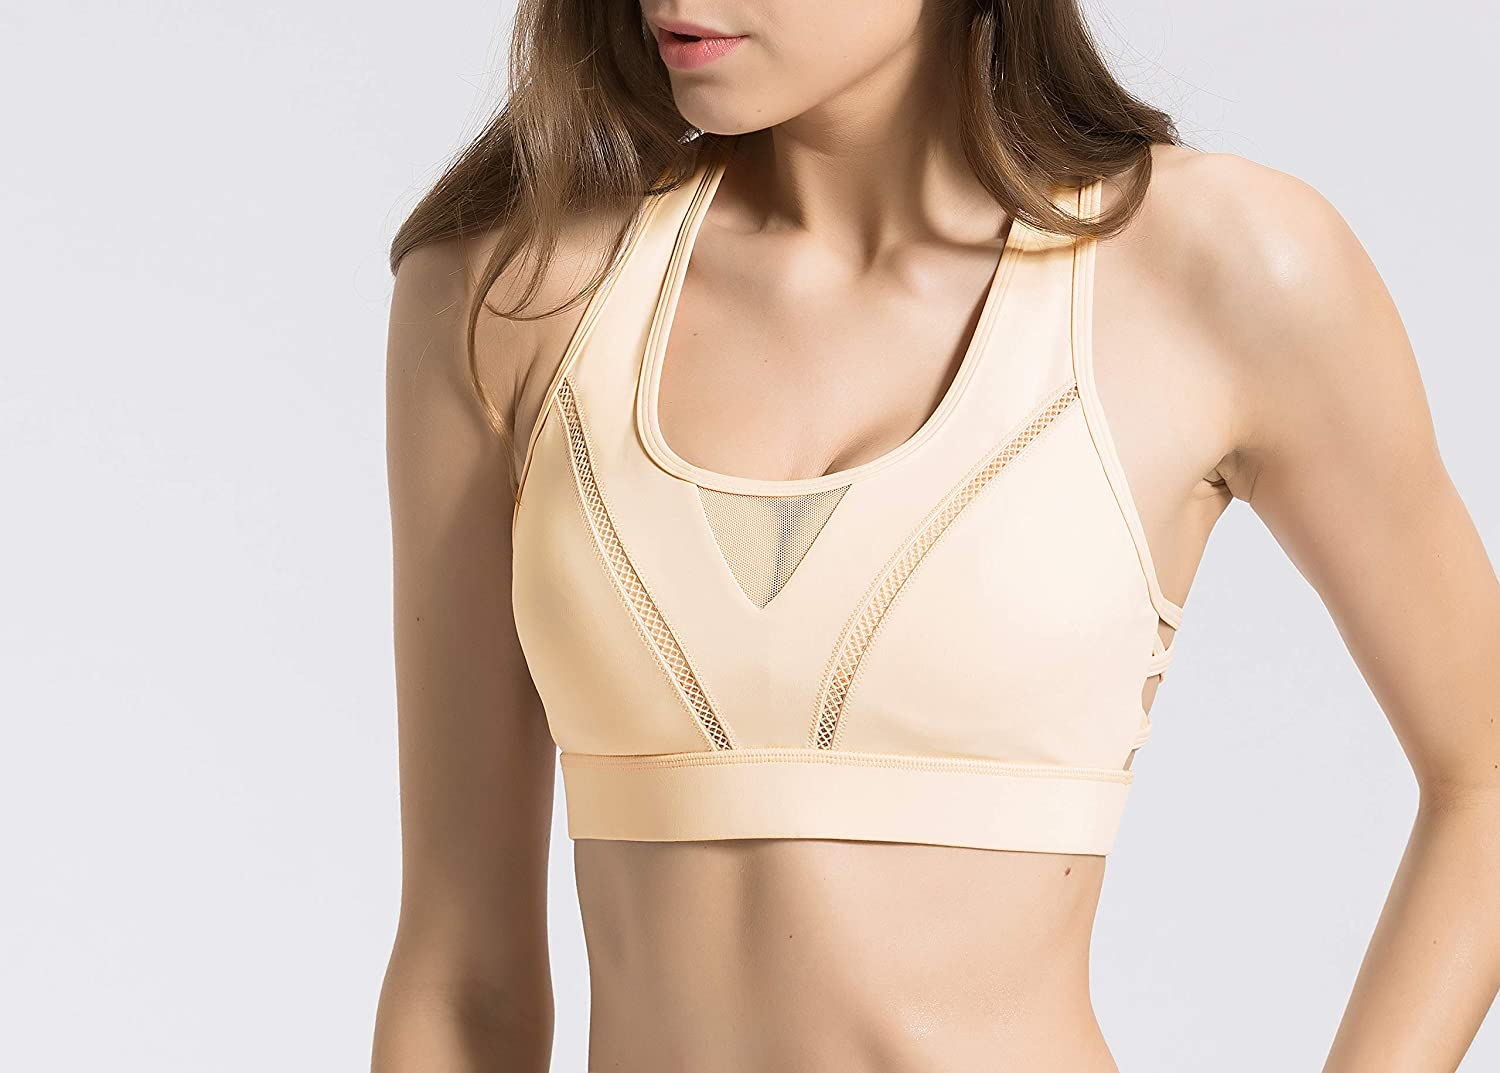 QUEENIEKE Sports Bra High Impact Wirefree Hook-and-Eye Closure Workout Bra for Womens 8204